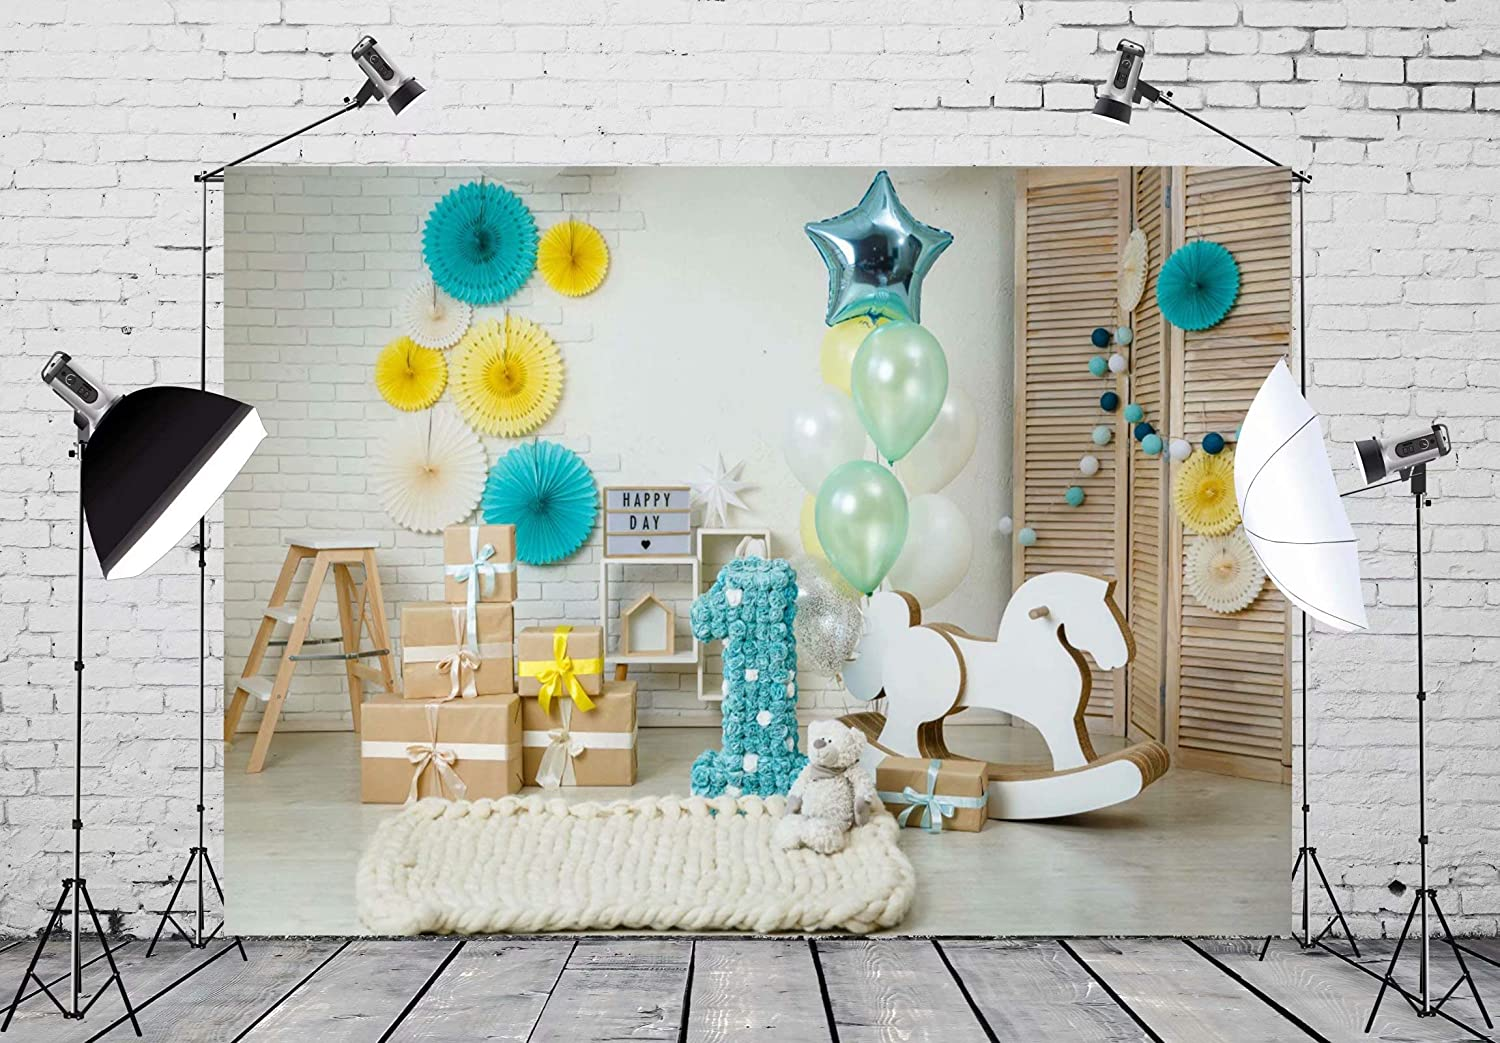 BELECO 7x5ft Cake Smash First Year Backdrop First Birthday Decor Baby Boy 1st Bday Photography Backdrop for Party Decorations Photoshoot Photo Background Props